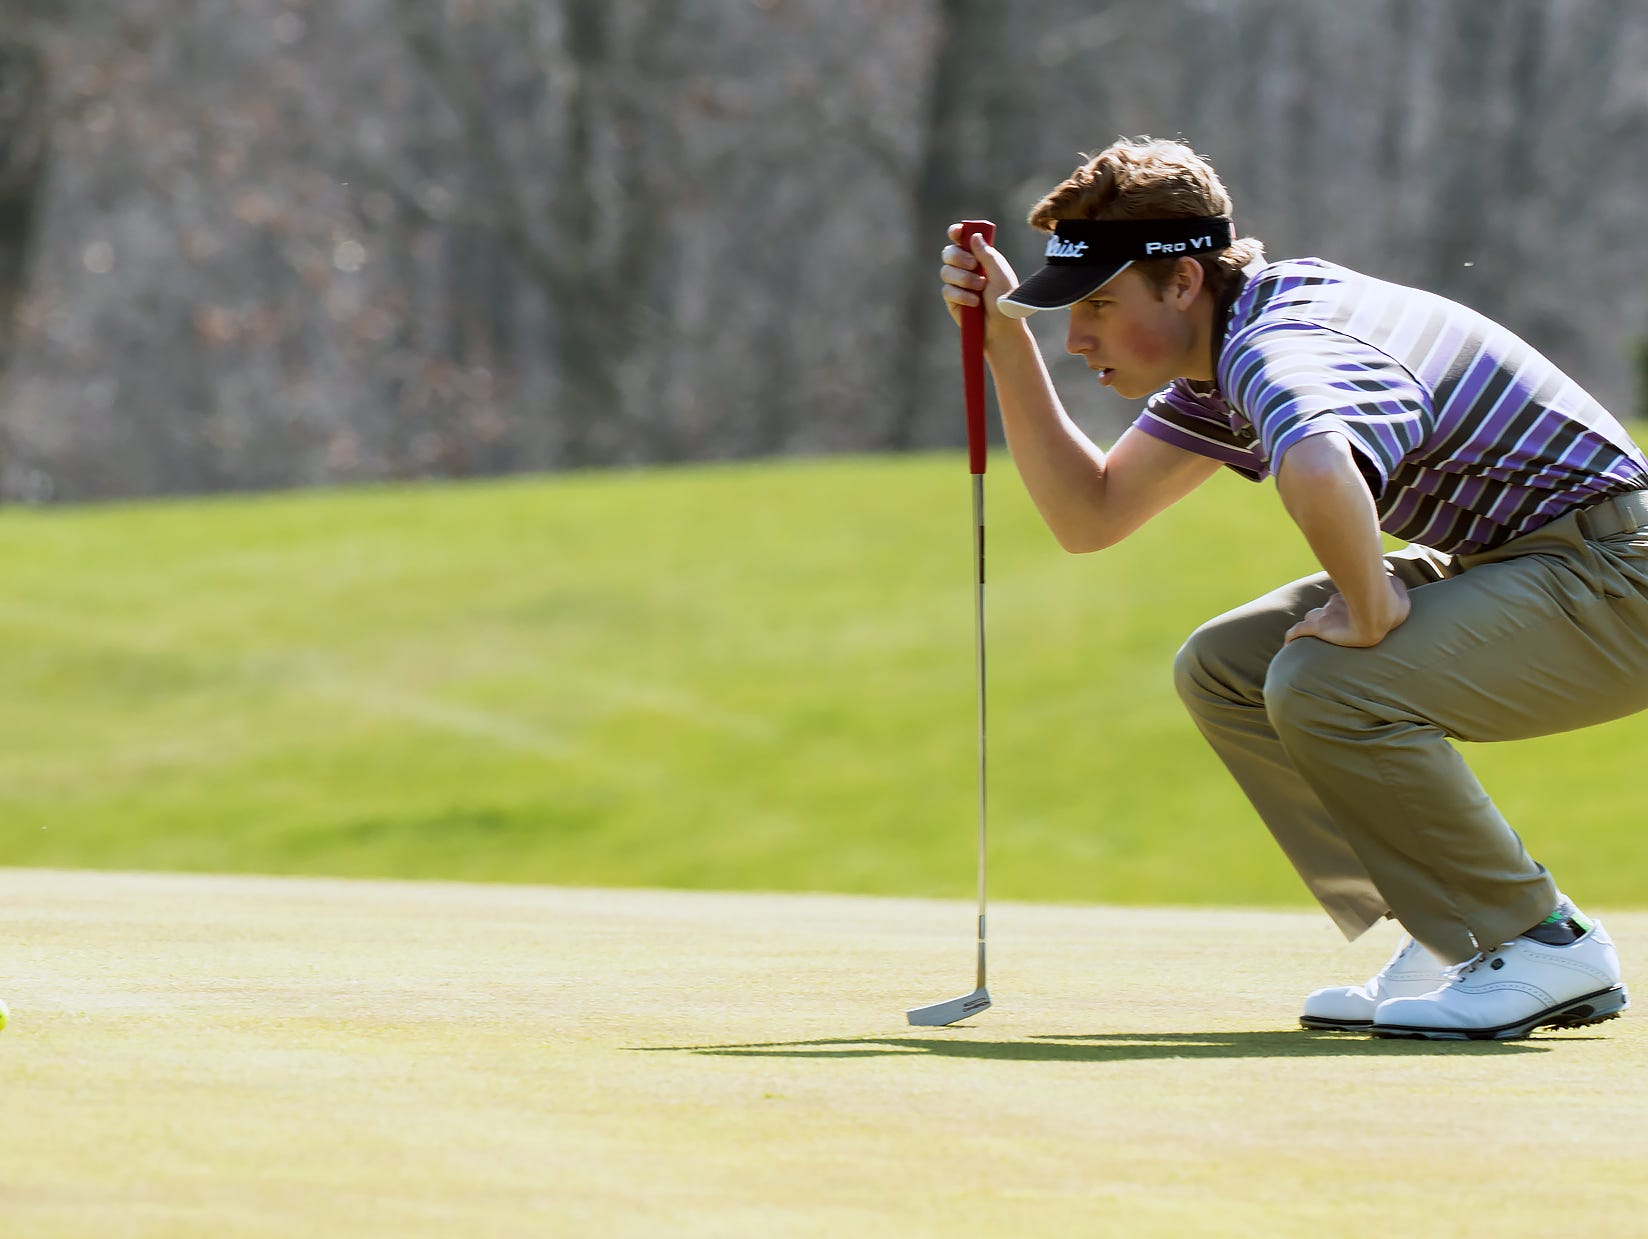 Lakeview's James Staab checks the lay of the green as he prepares to putt on the 10th hole early in the Lakeview Jamboree held at Cedar Creek golf course Thursday afternoon.